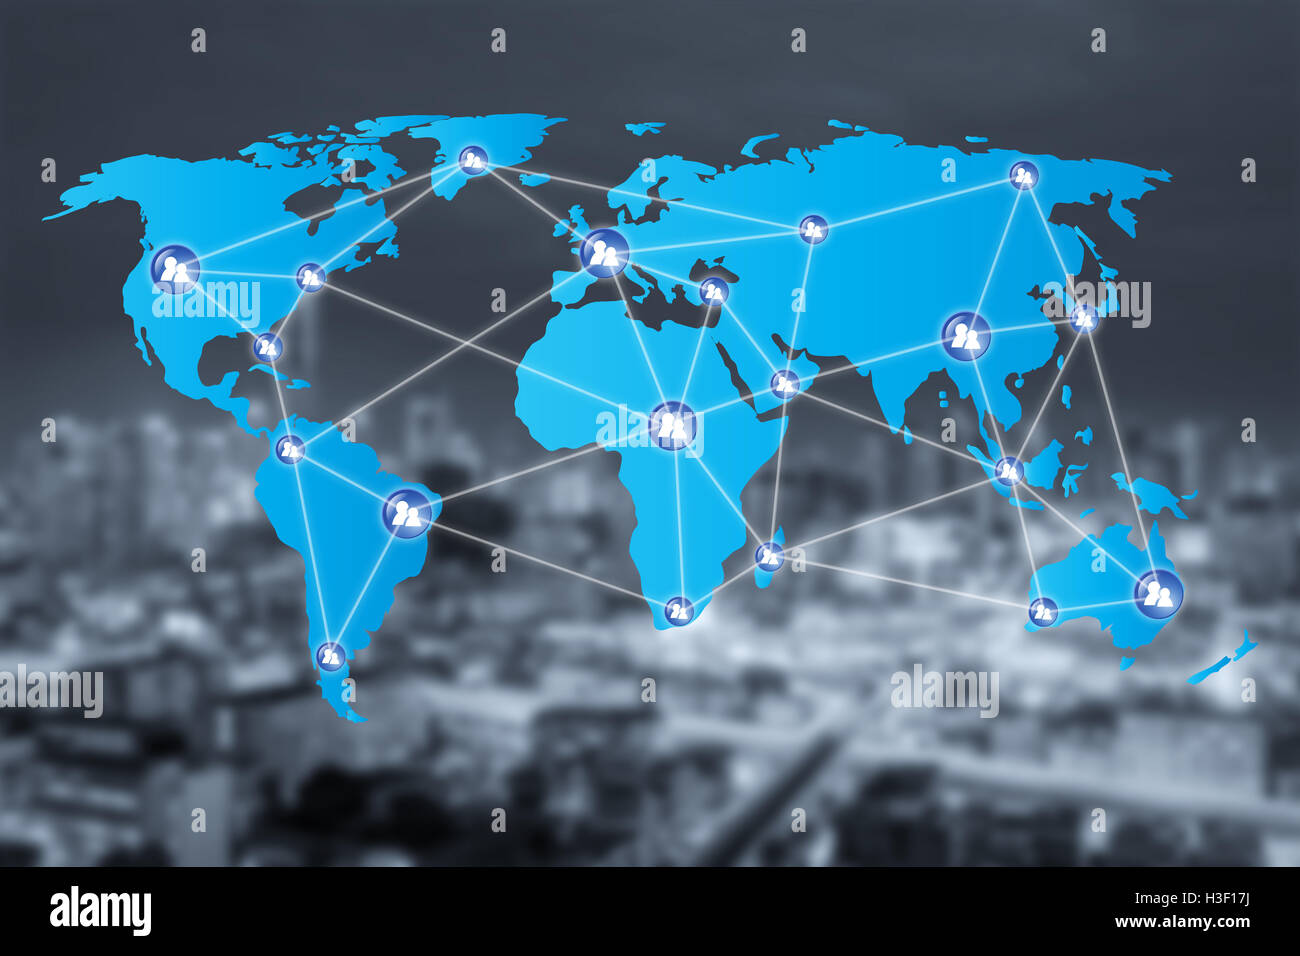 People network connection icons with World map connection and blur